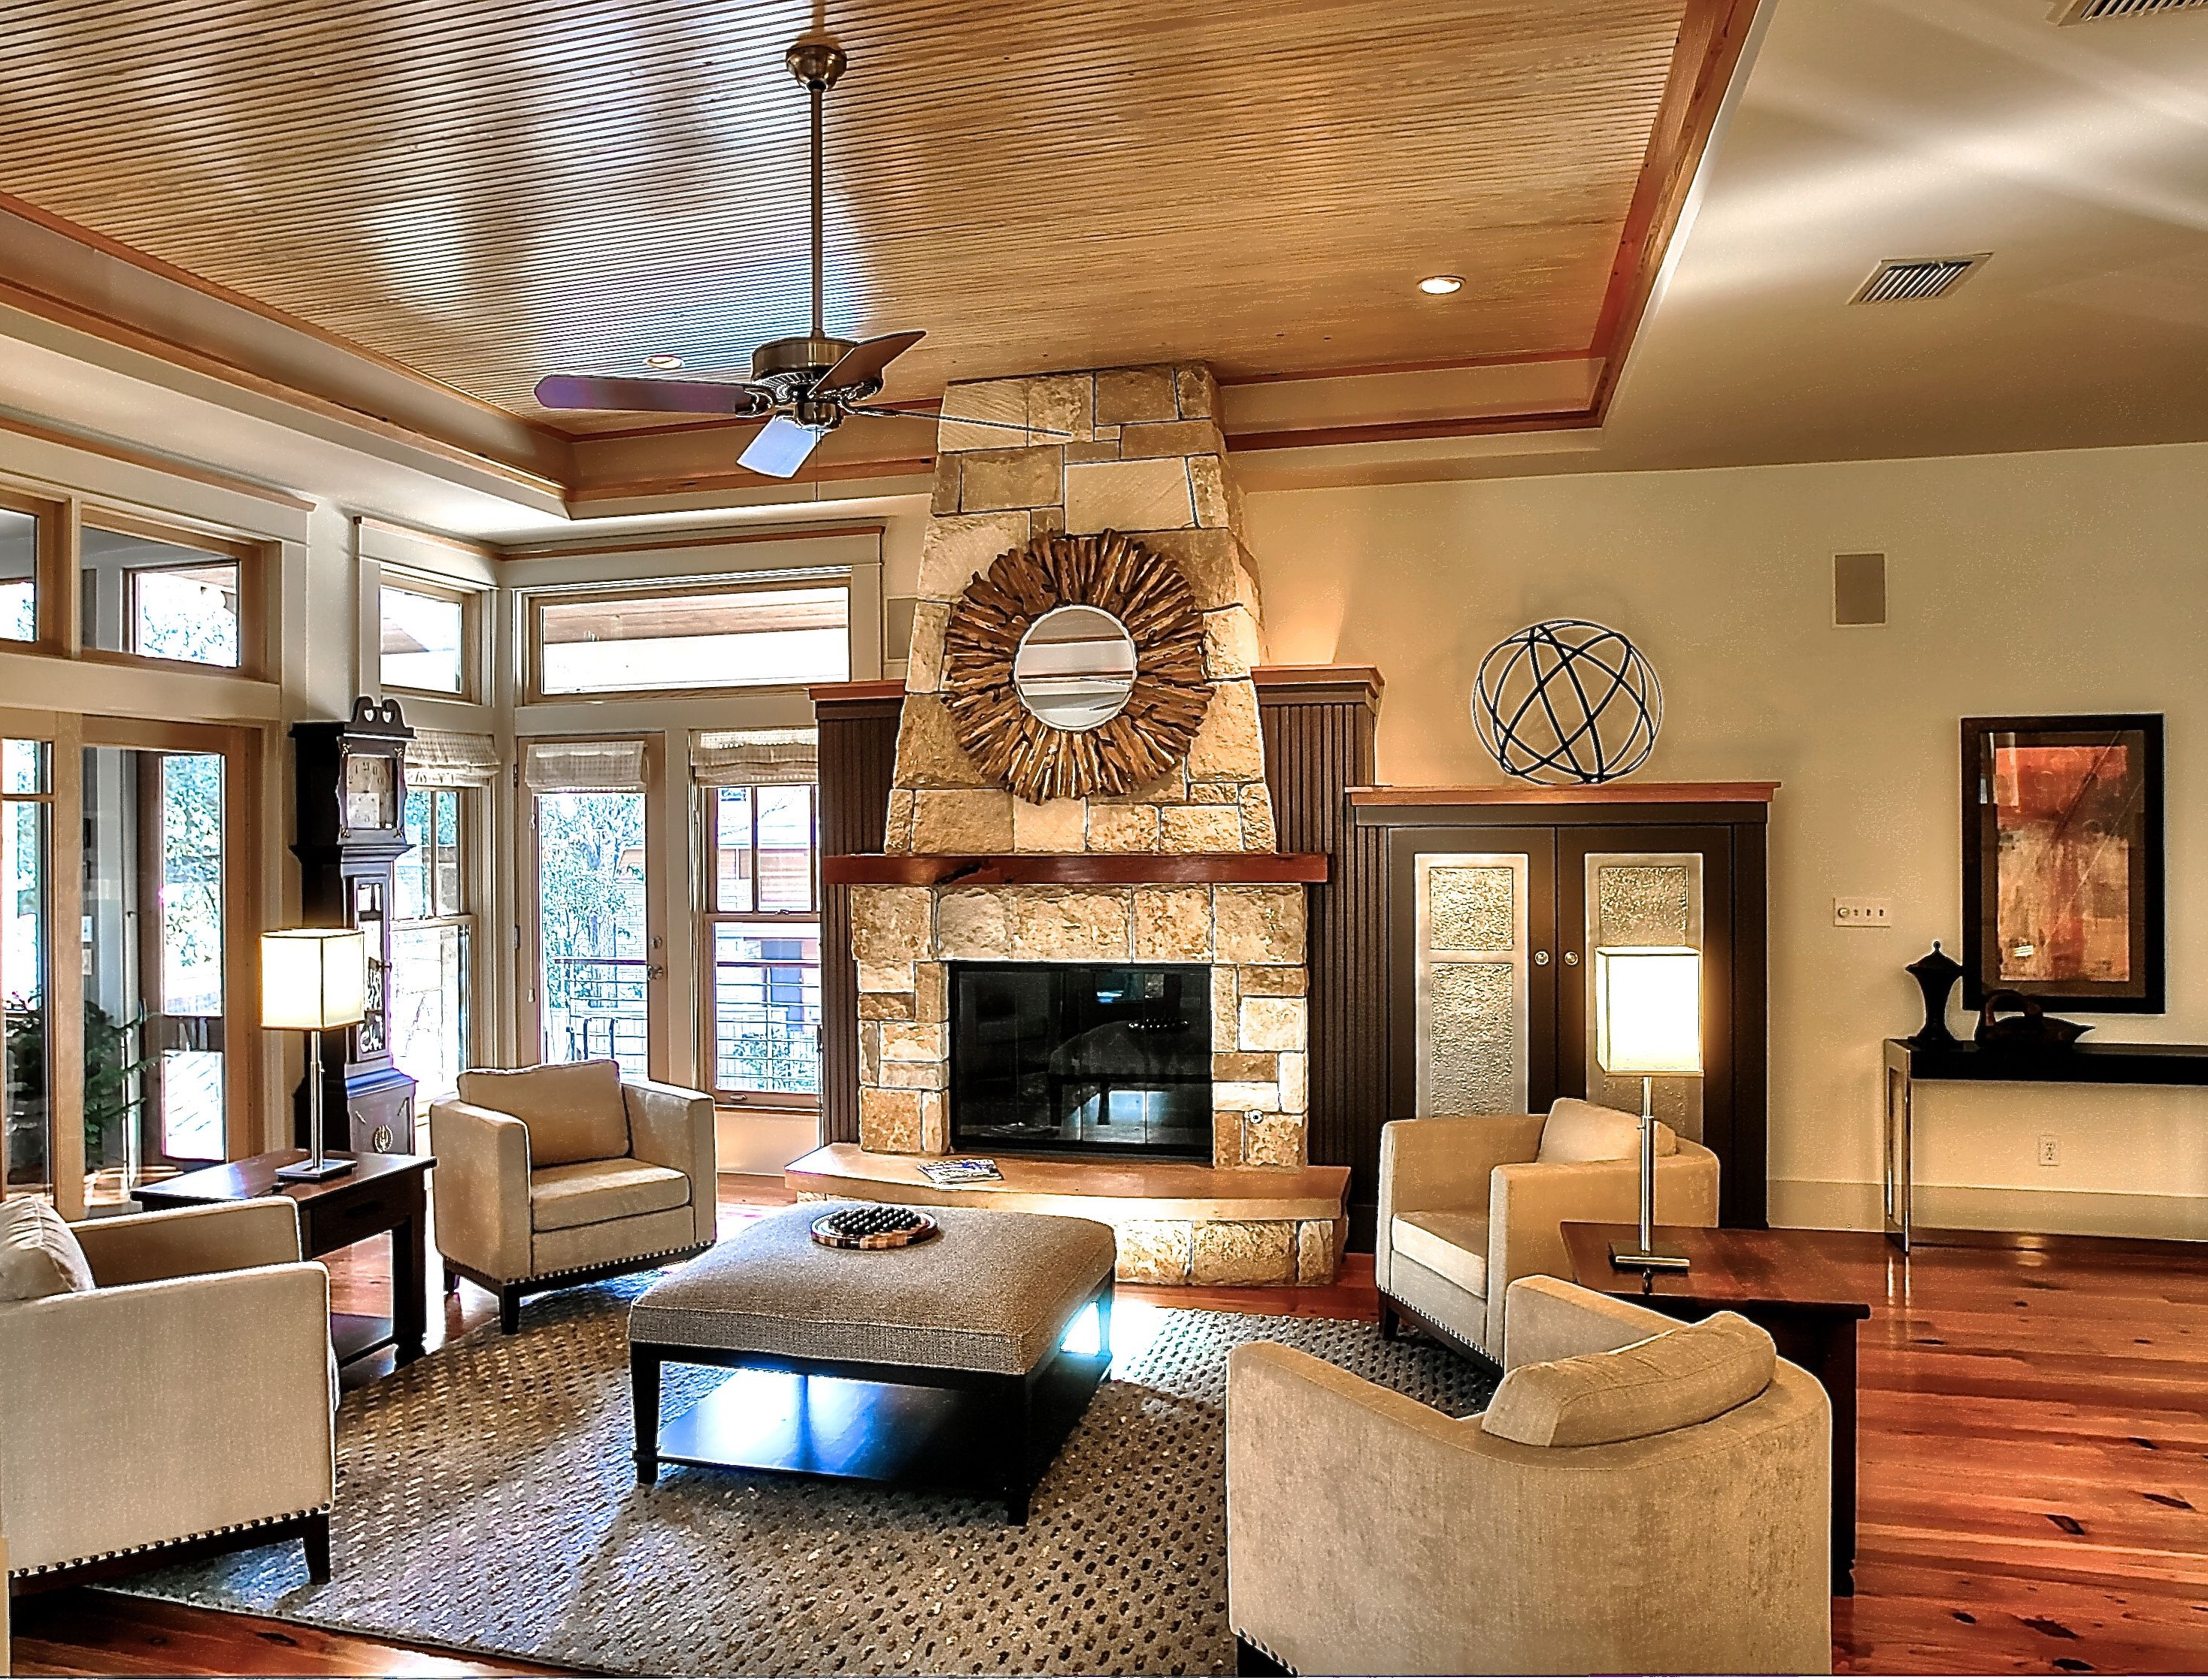 Sophisticated Rustic Living Room Decor With Modern Lighting (Image 34 of 36)